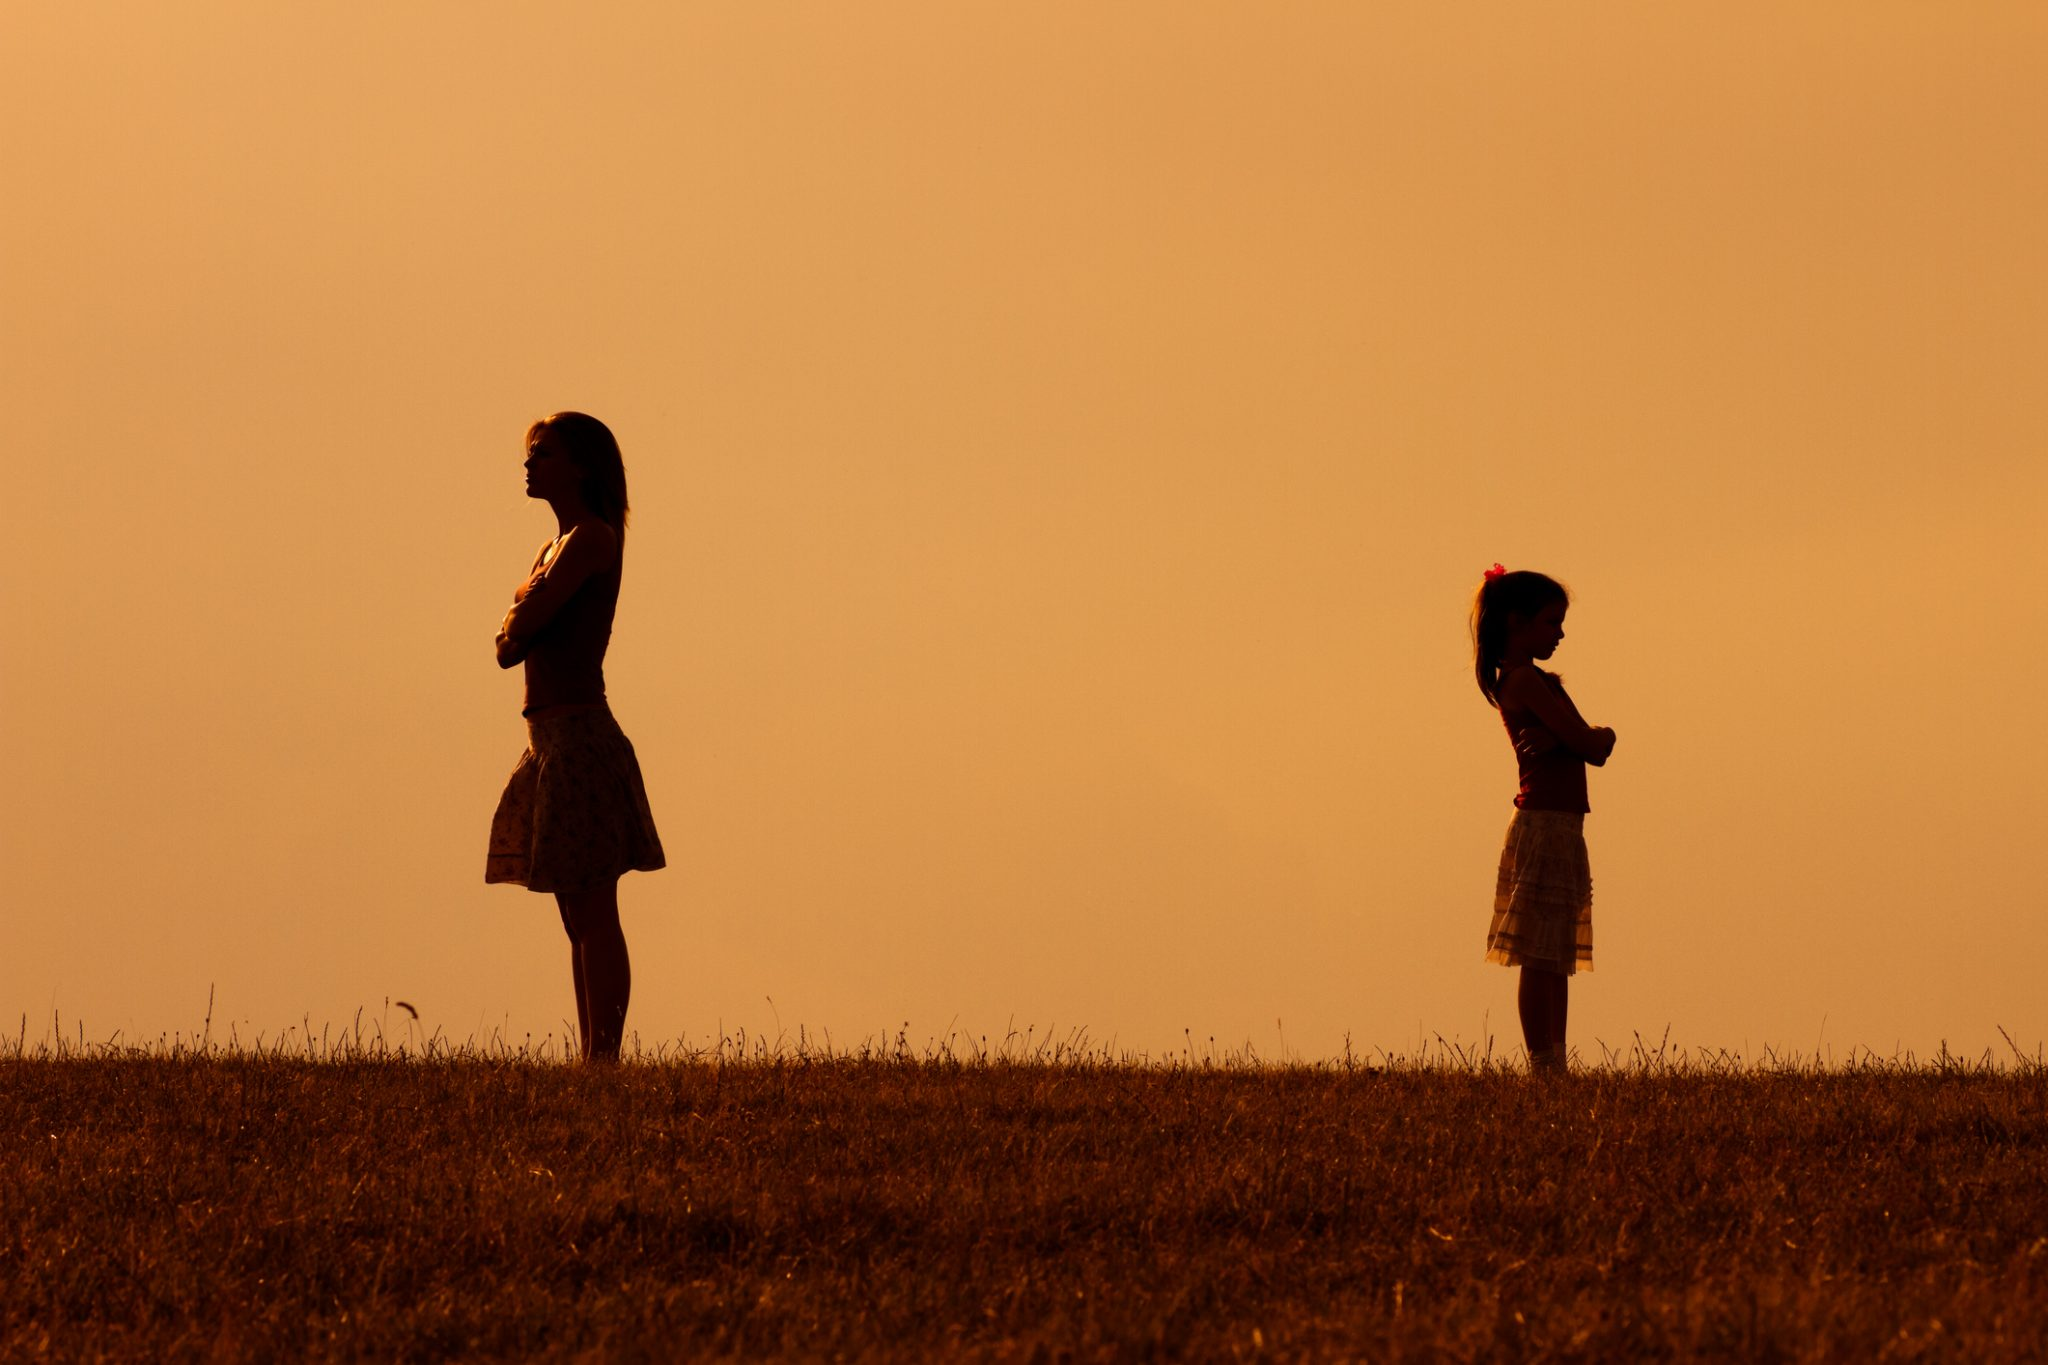 Silhouette of a angry mother and daughter on each other.